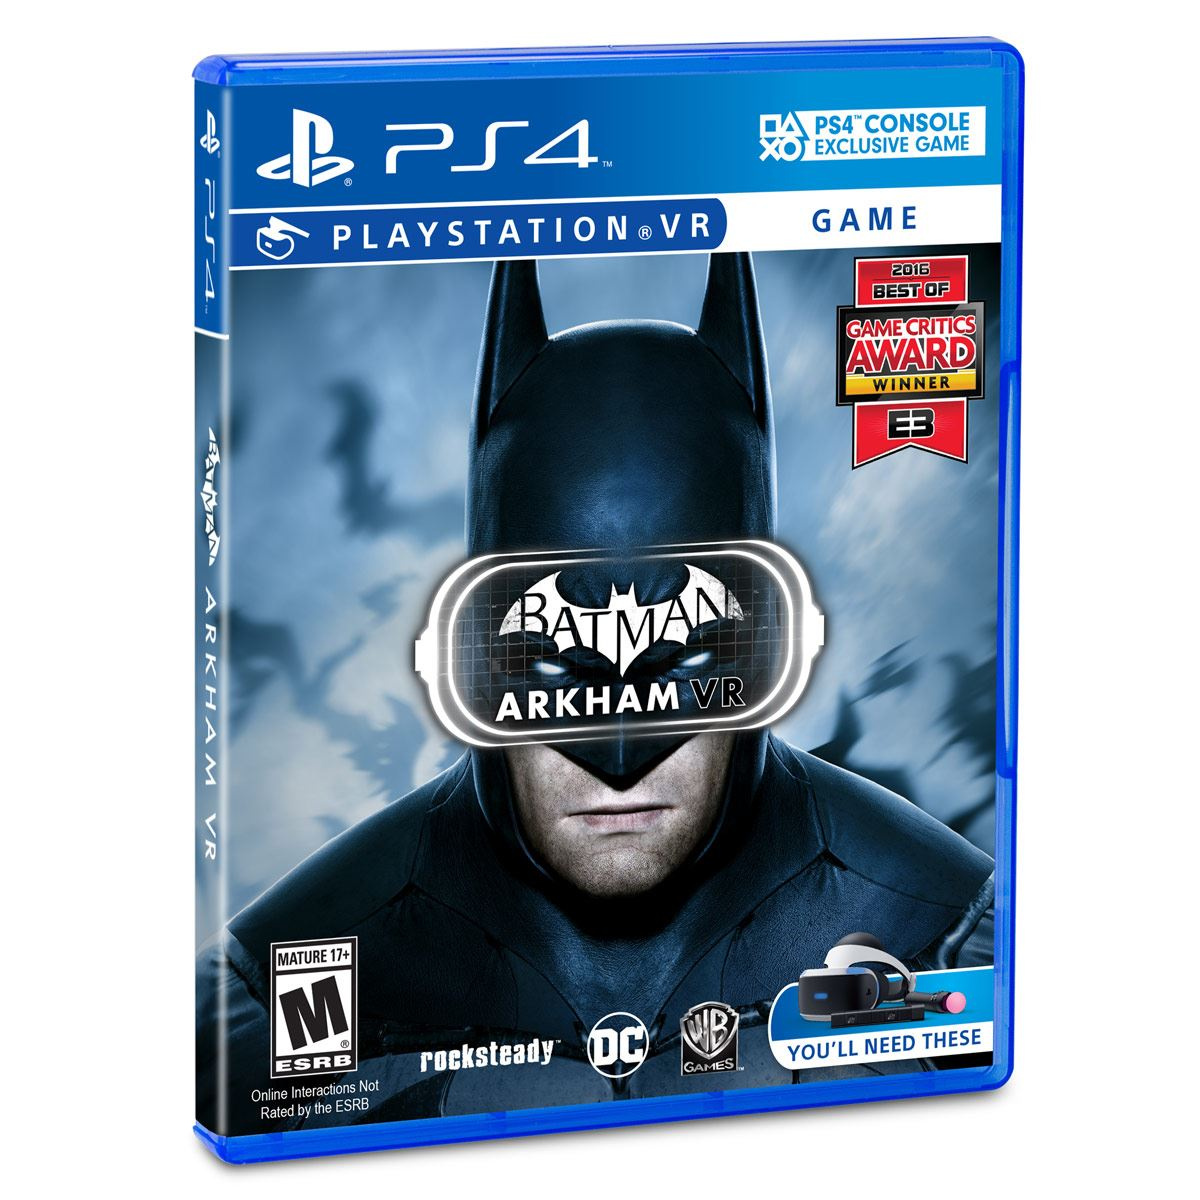 PS4 VR Batman Arkham